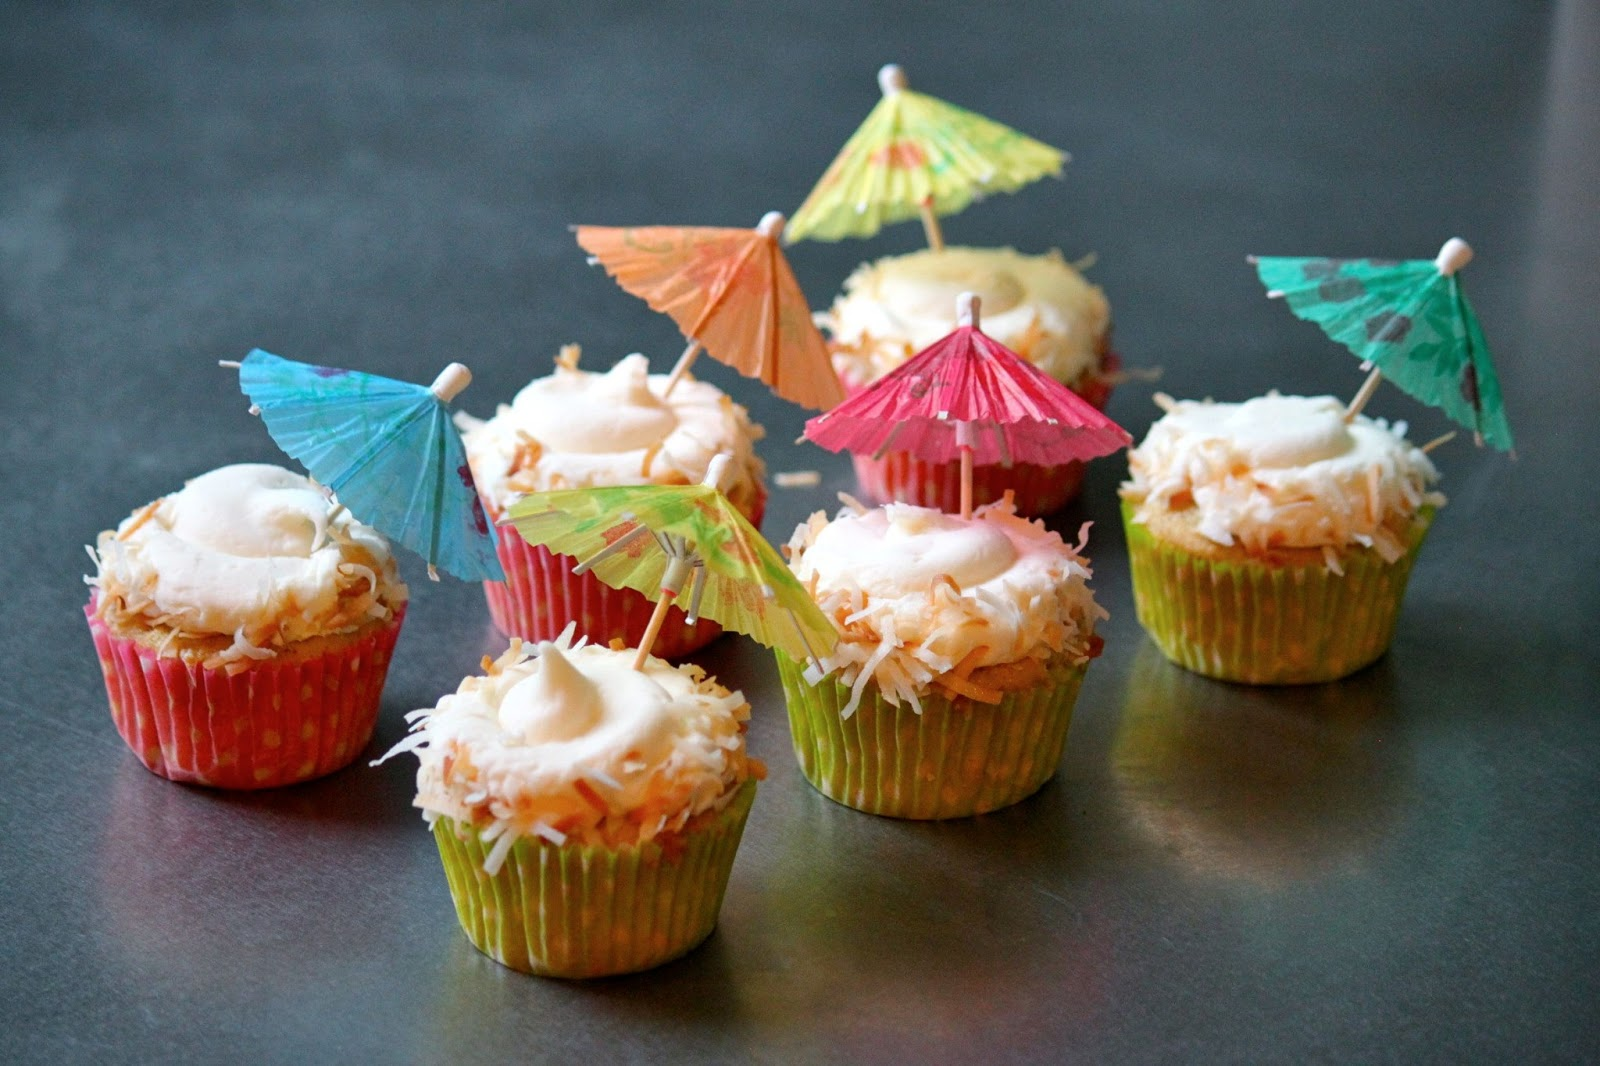 Baked Perfection: Pina Colada Cupcakes